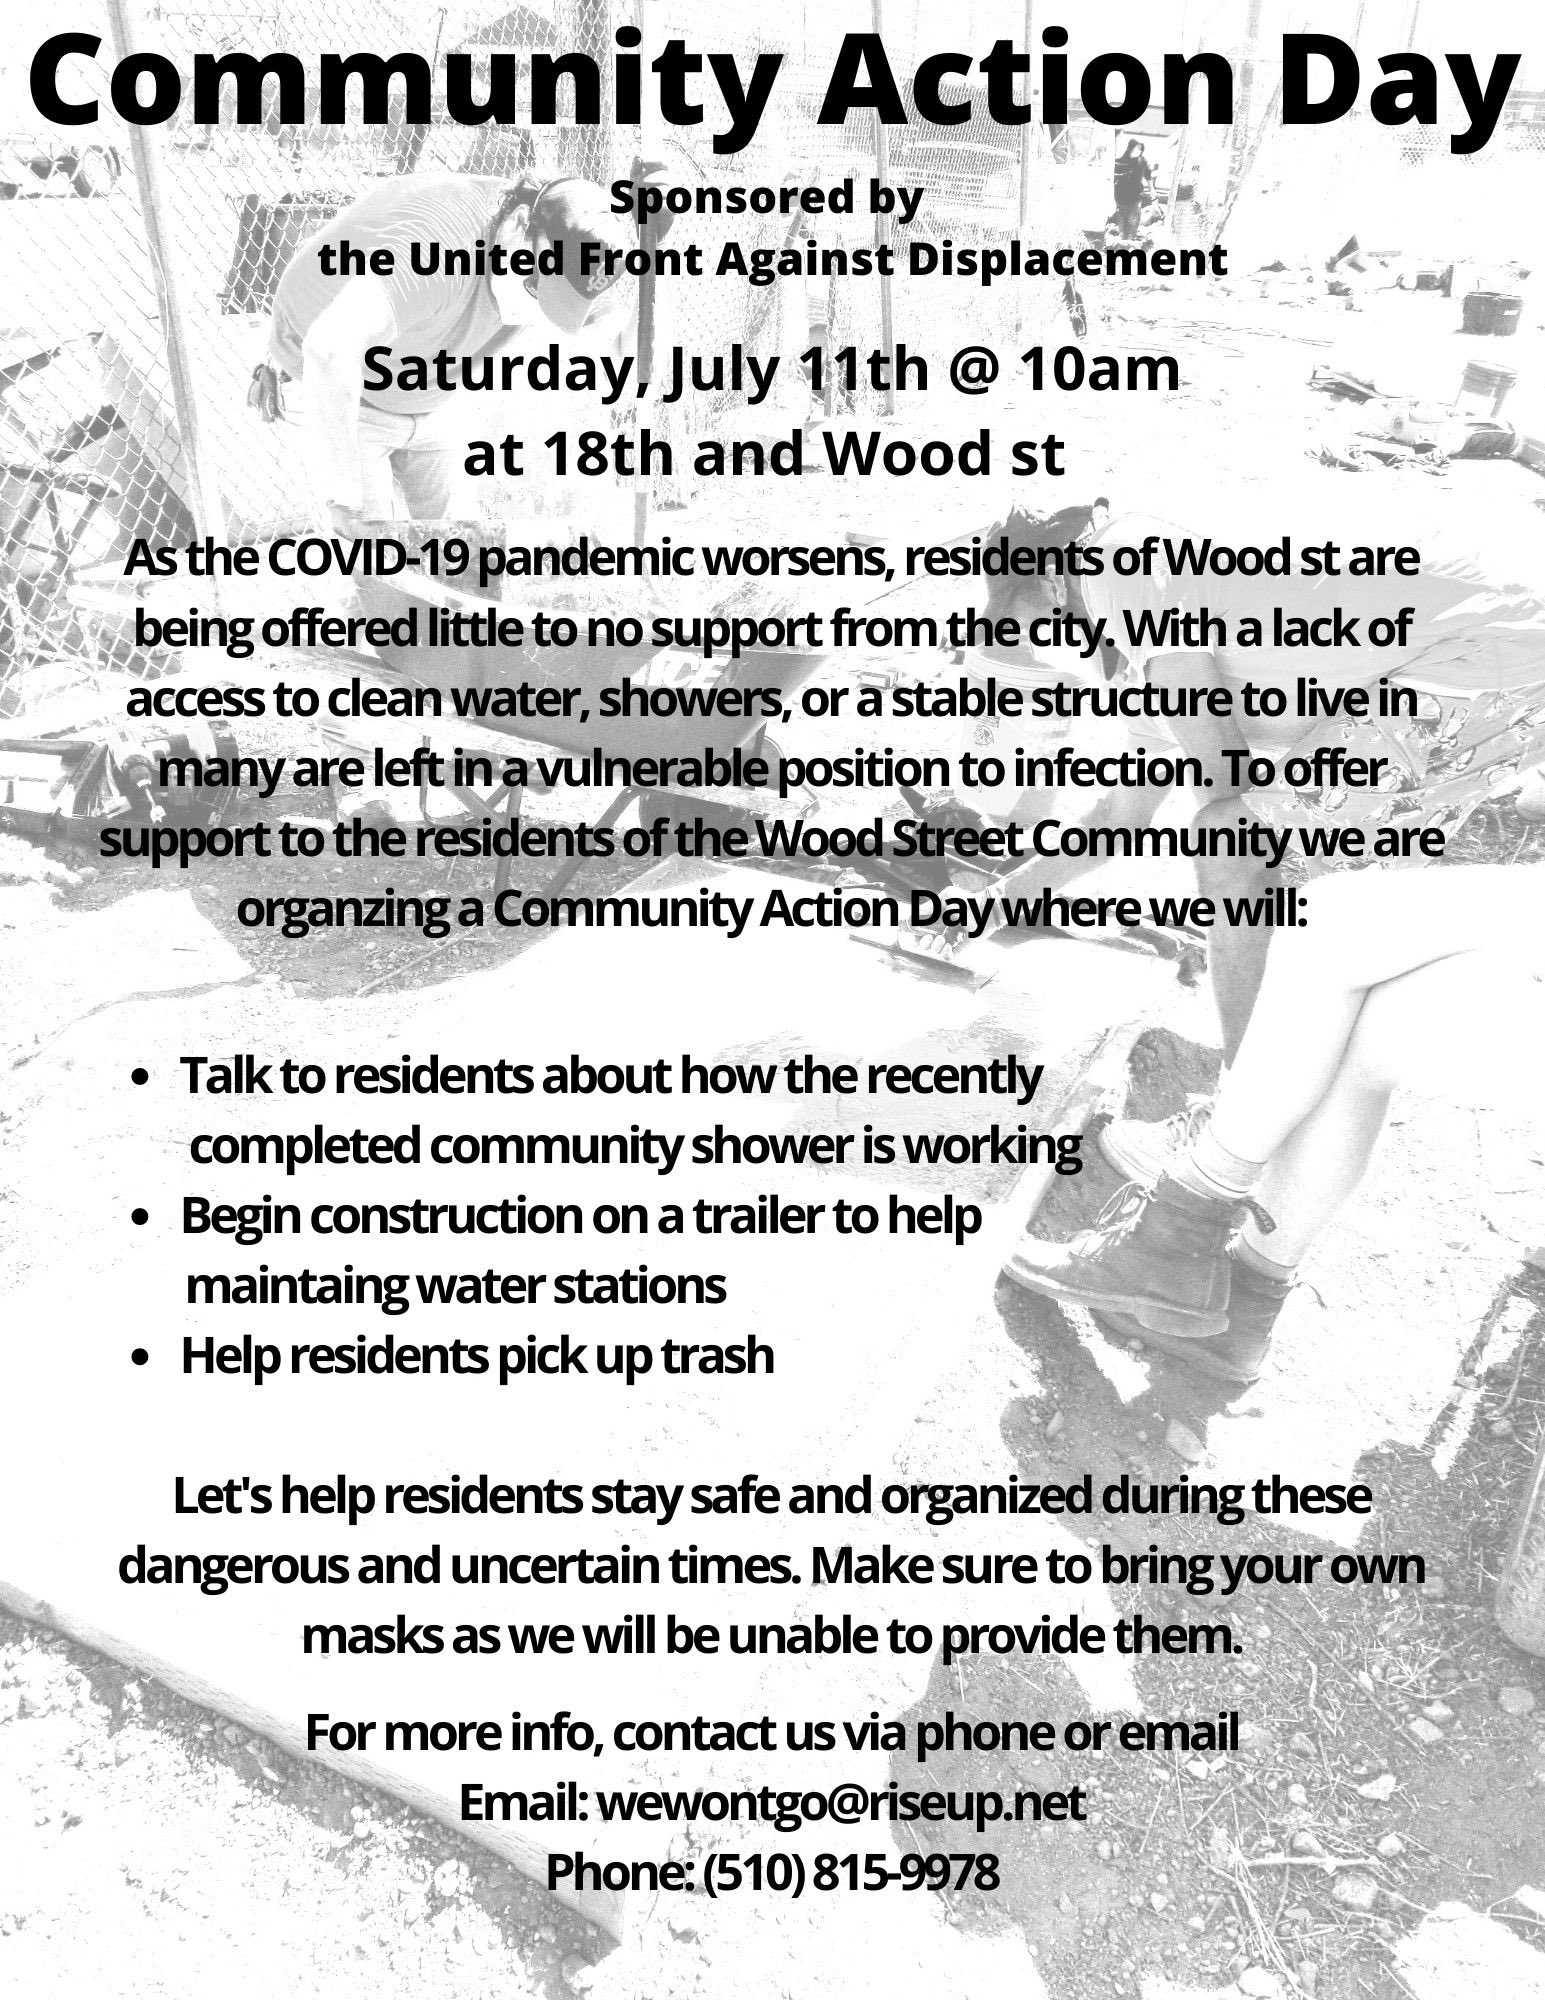 Wood St. - Community Action Day